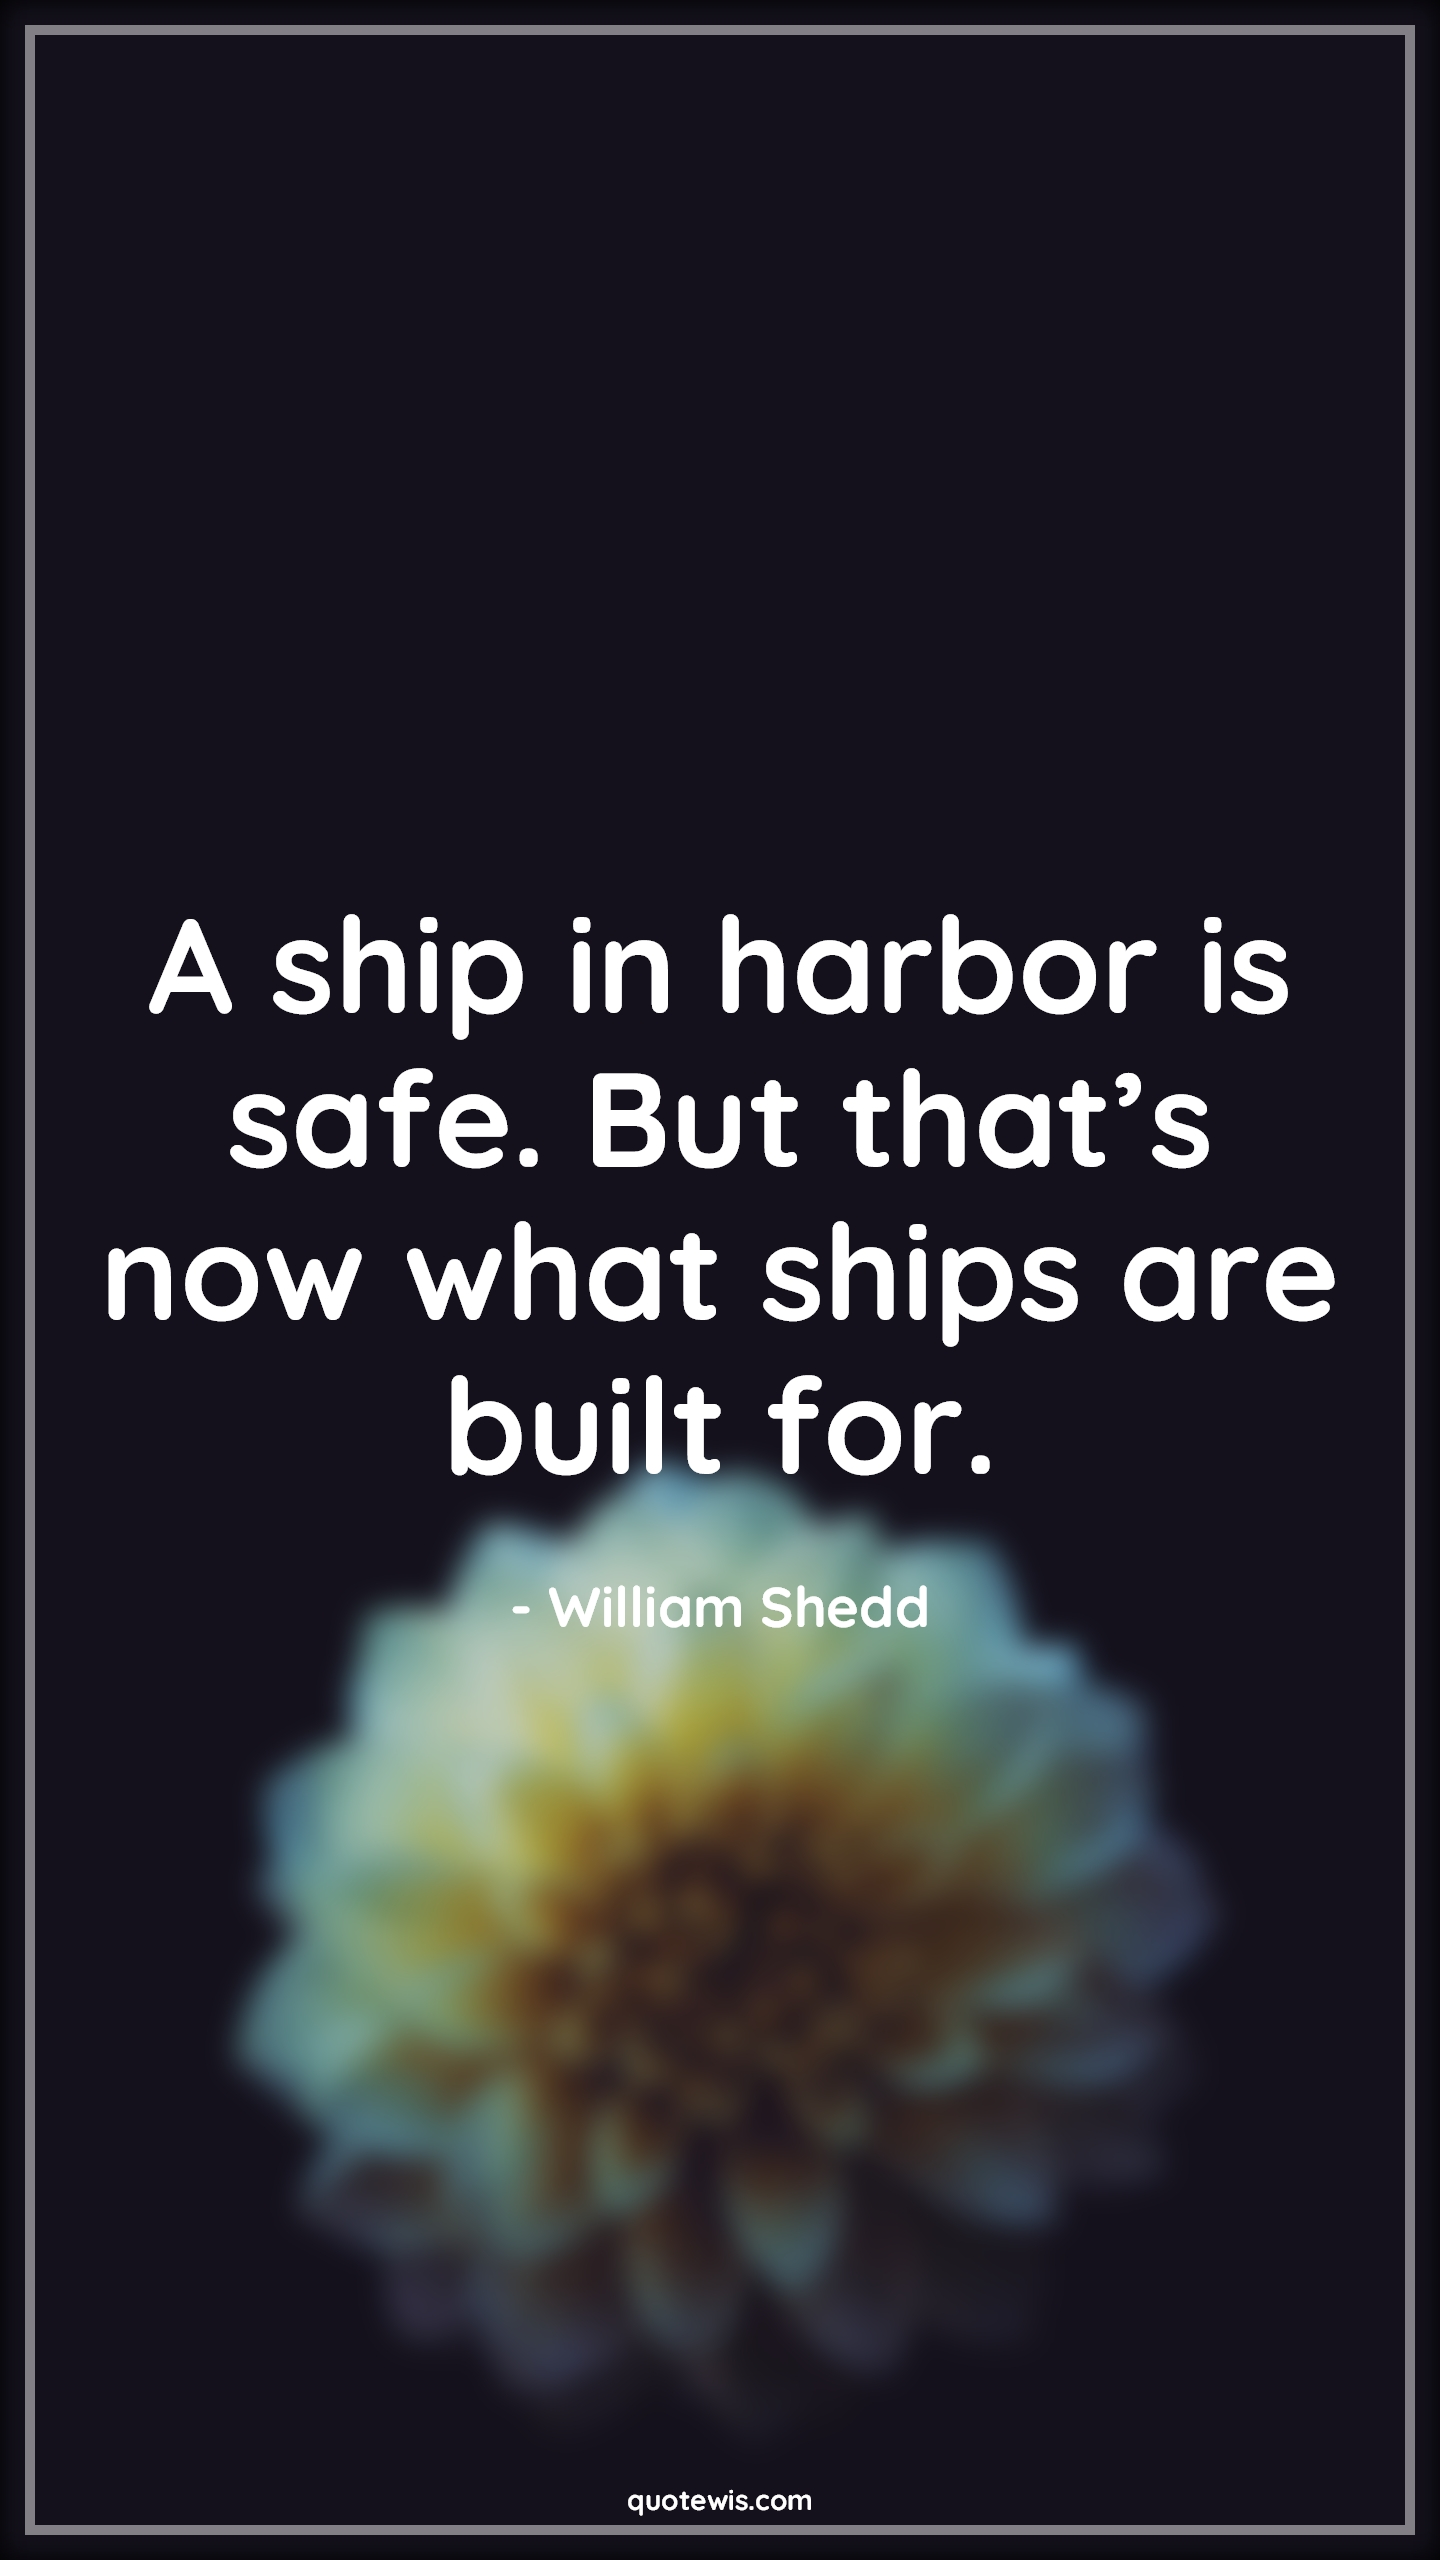 A ship in harbor is safe. But that's now what ships are built for.